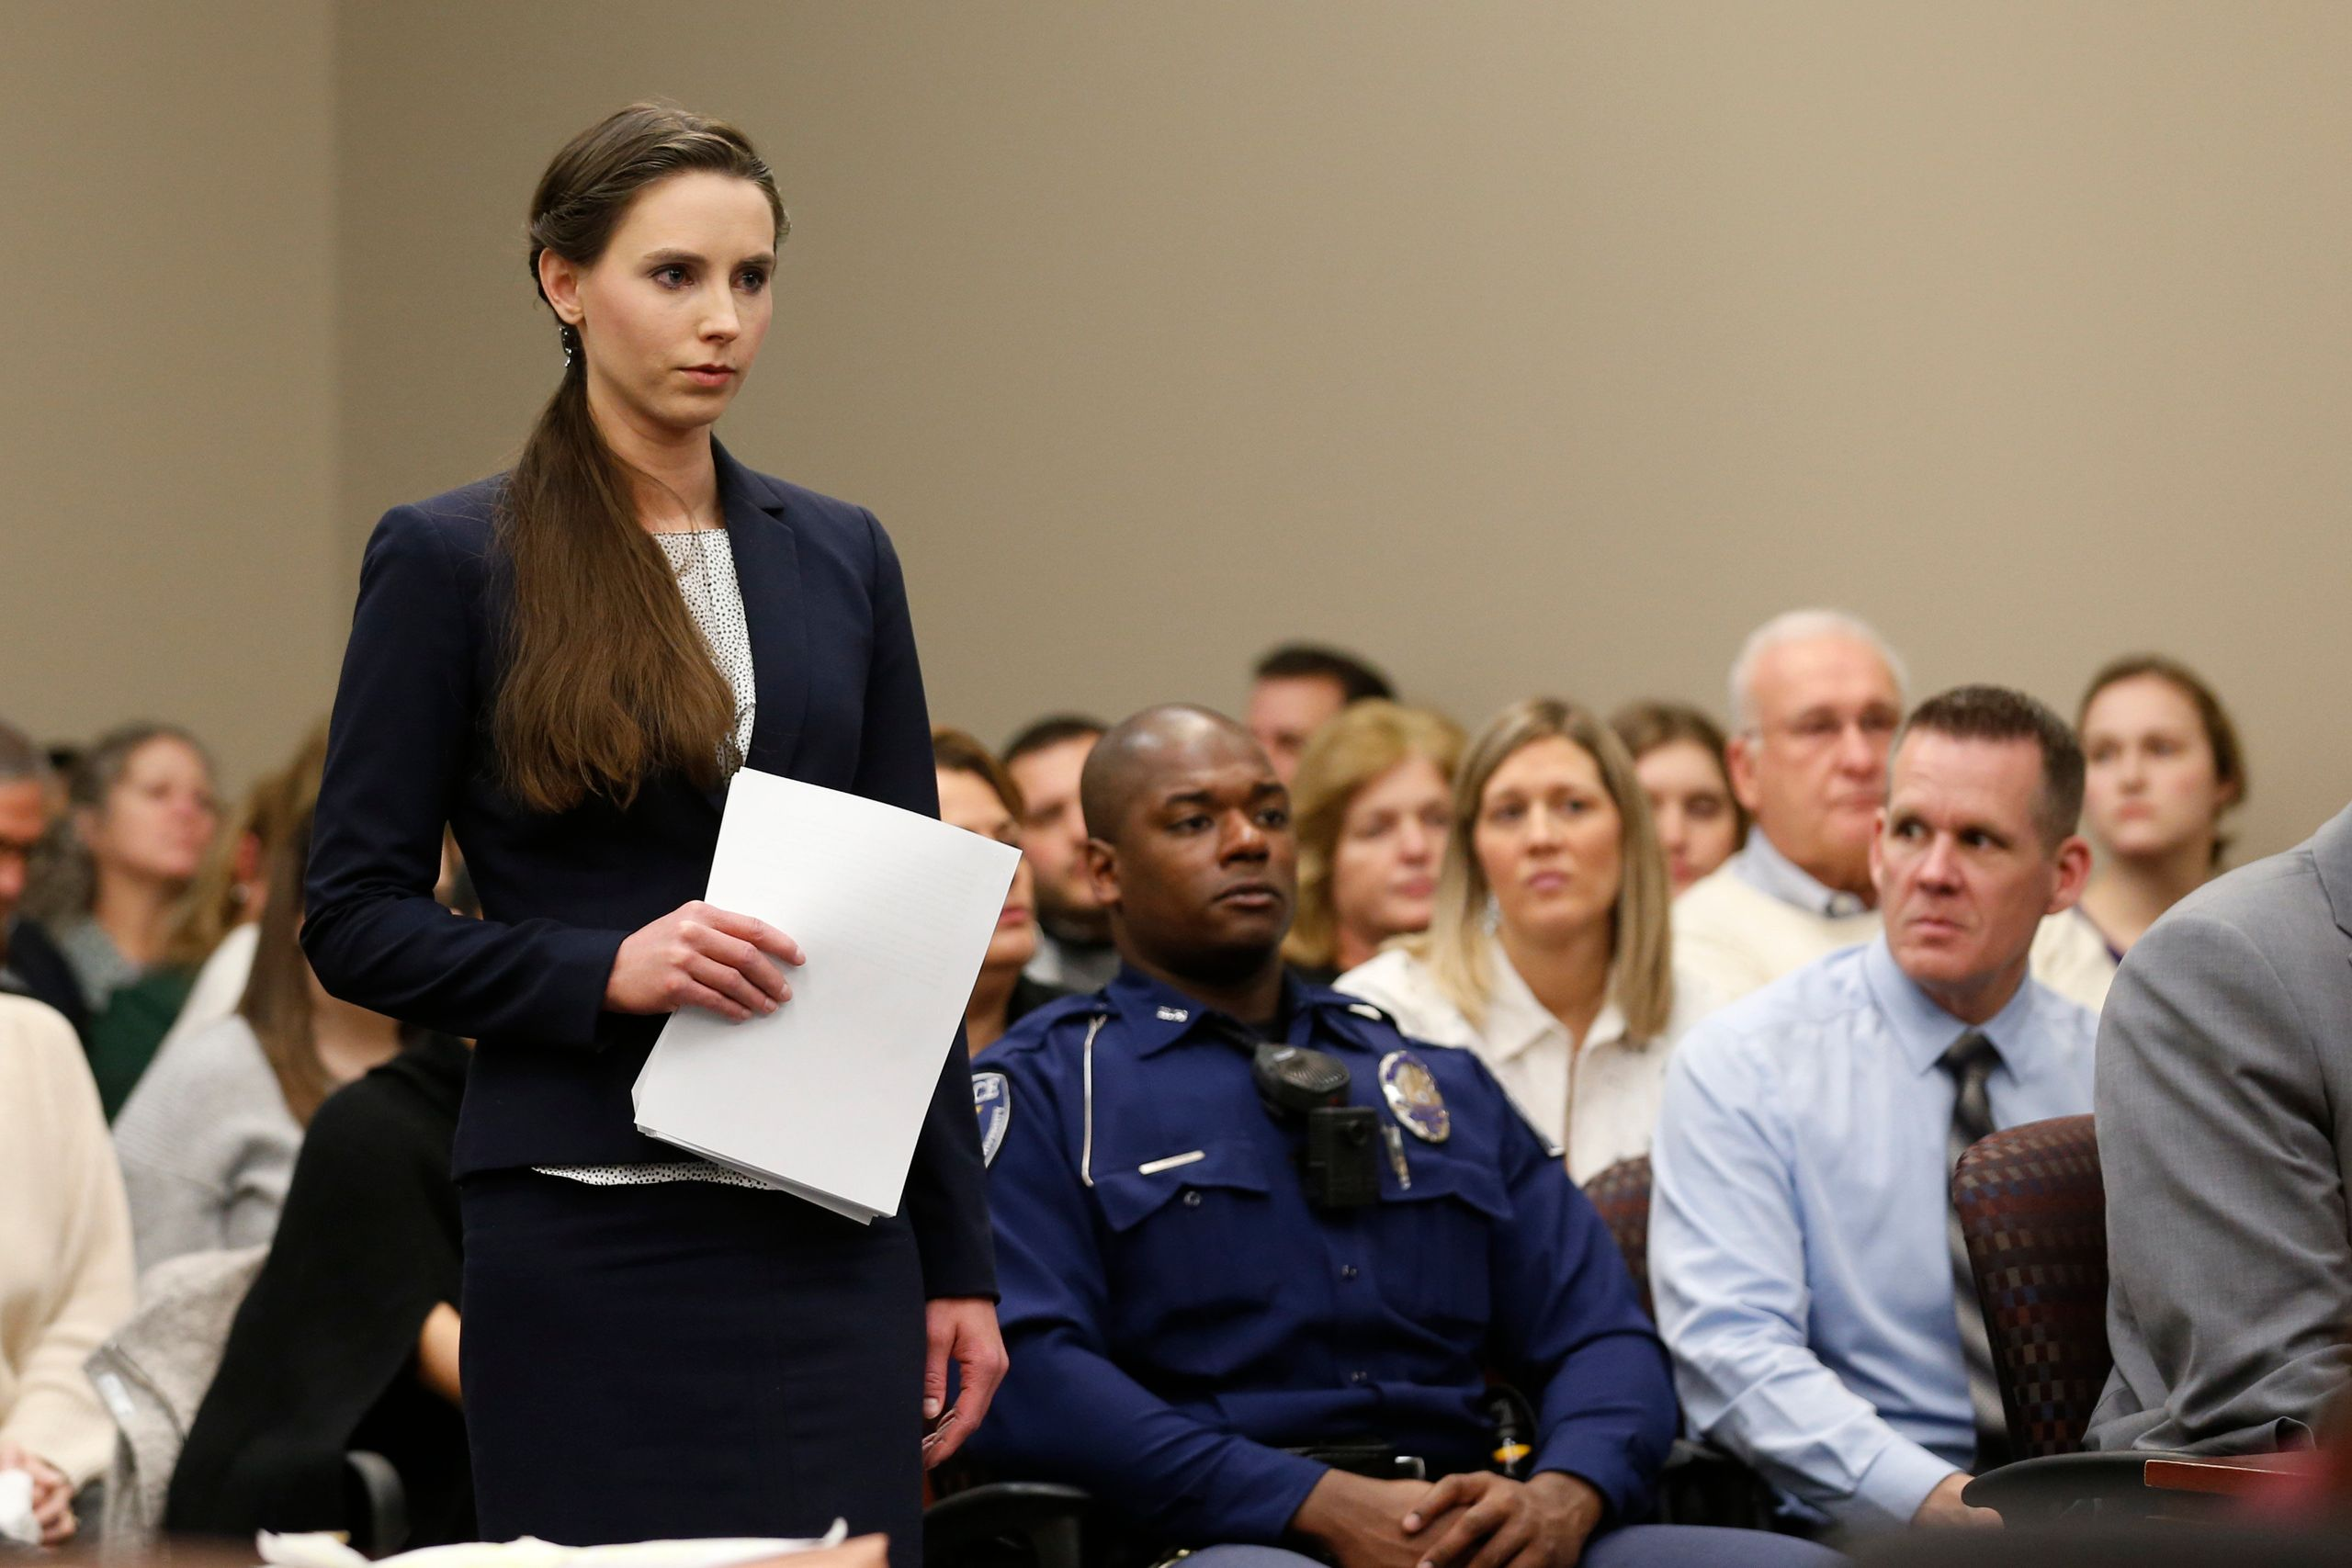 Rachael Denhollander became the first woman to publicly accuse former USA Gymnastics physician Larry Nassar of sexual abuse w